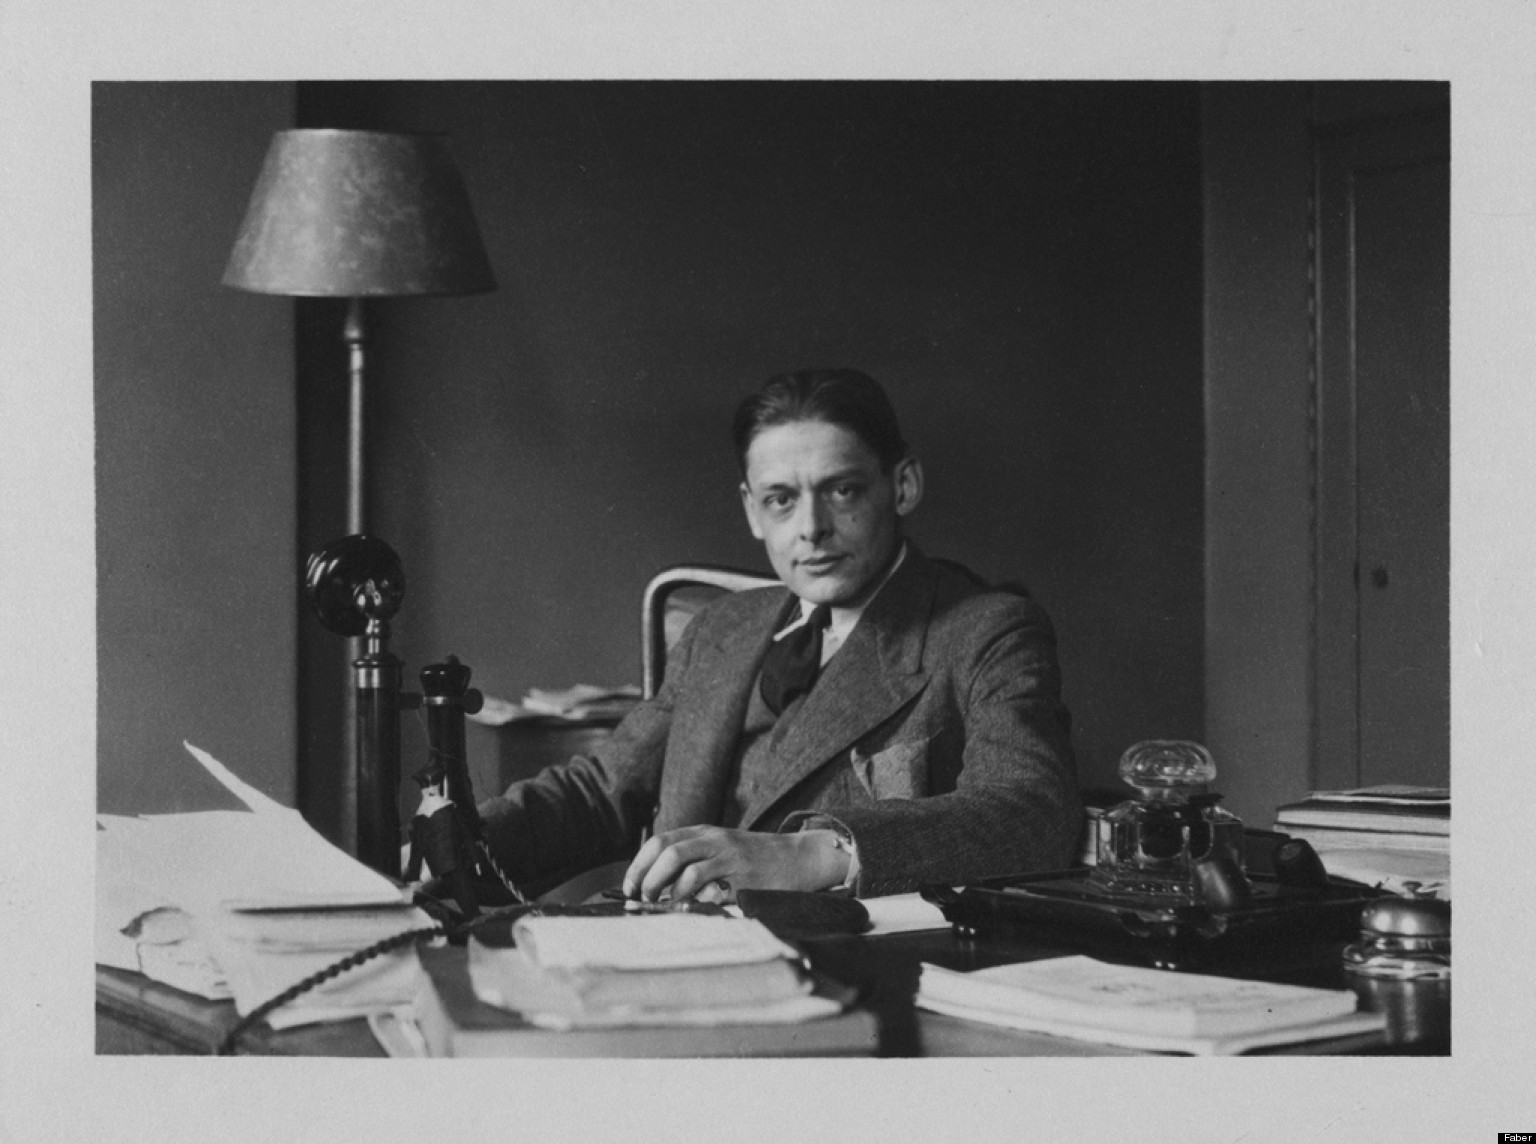 essays of ts eliot Ts eliot journey of the magi analysis (2004, march 17) in writeworkcom retrieved 21:10, may 12, 2018, from .